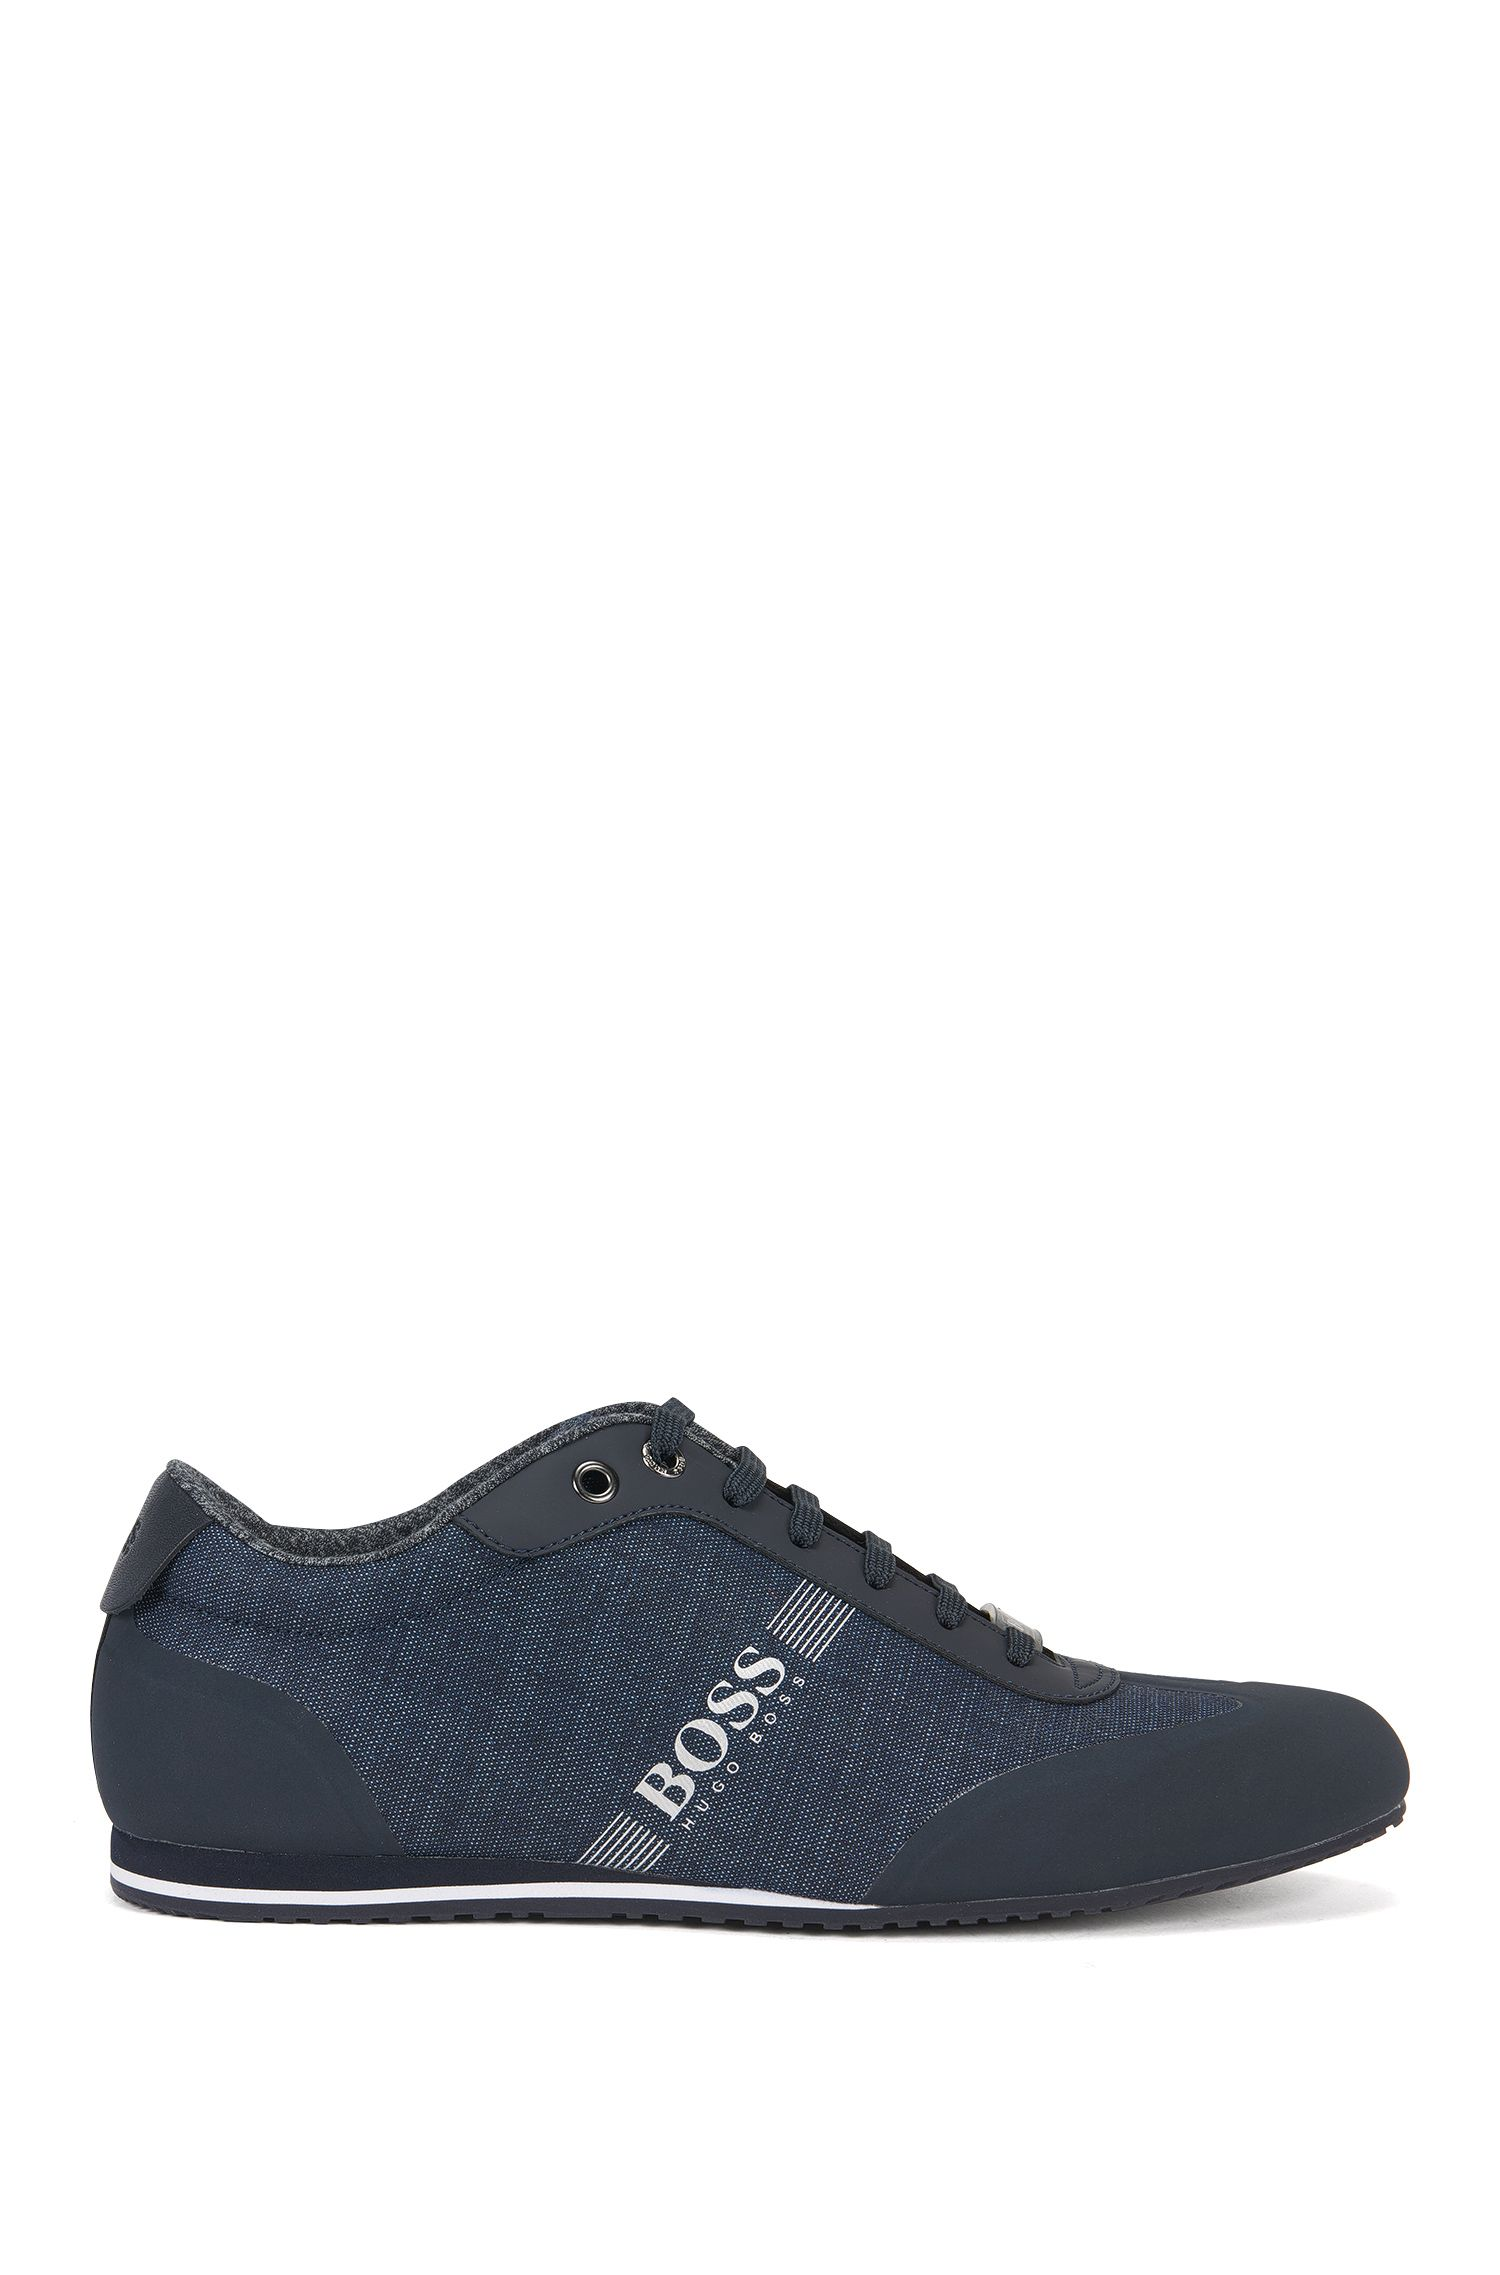 Vetersneakers van gecoate denim